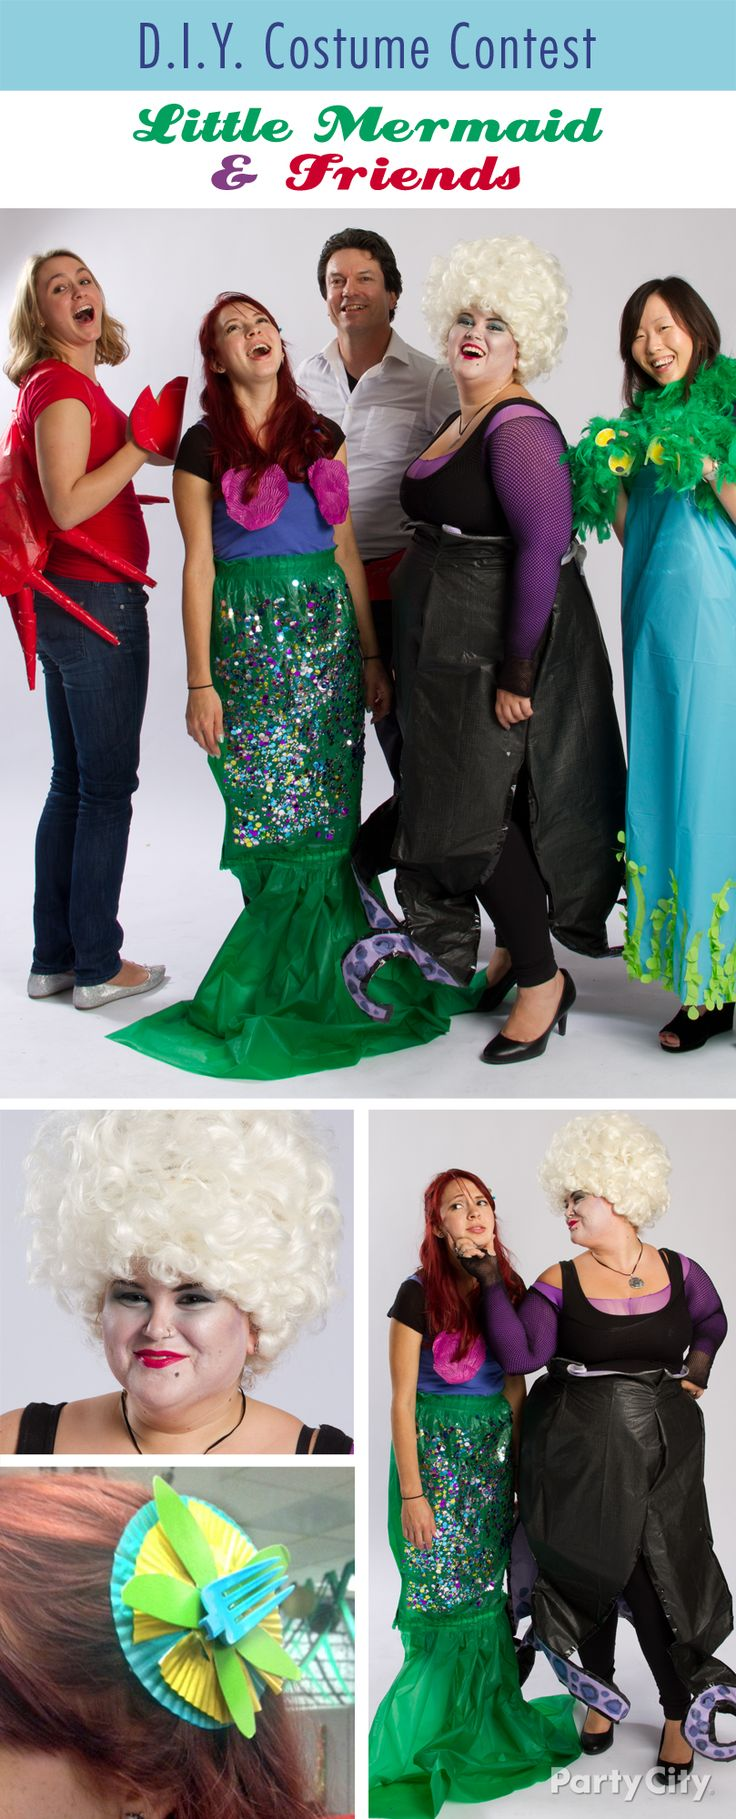 group and little mermaid Meet the cast of disney's the little mermaid meet the cast of disney's the little mermaid greg gilson 2018-07-09t14:15:30+00:00  the price group,.